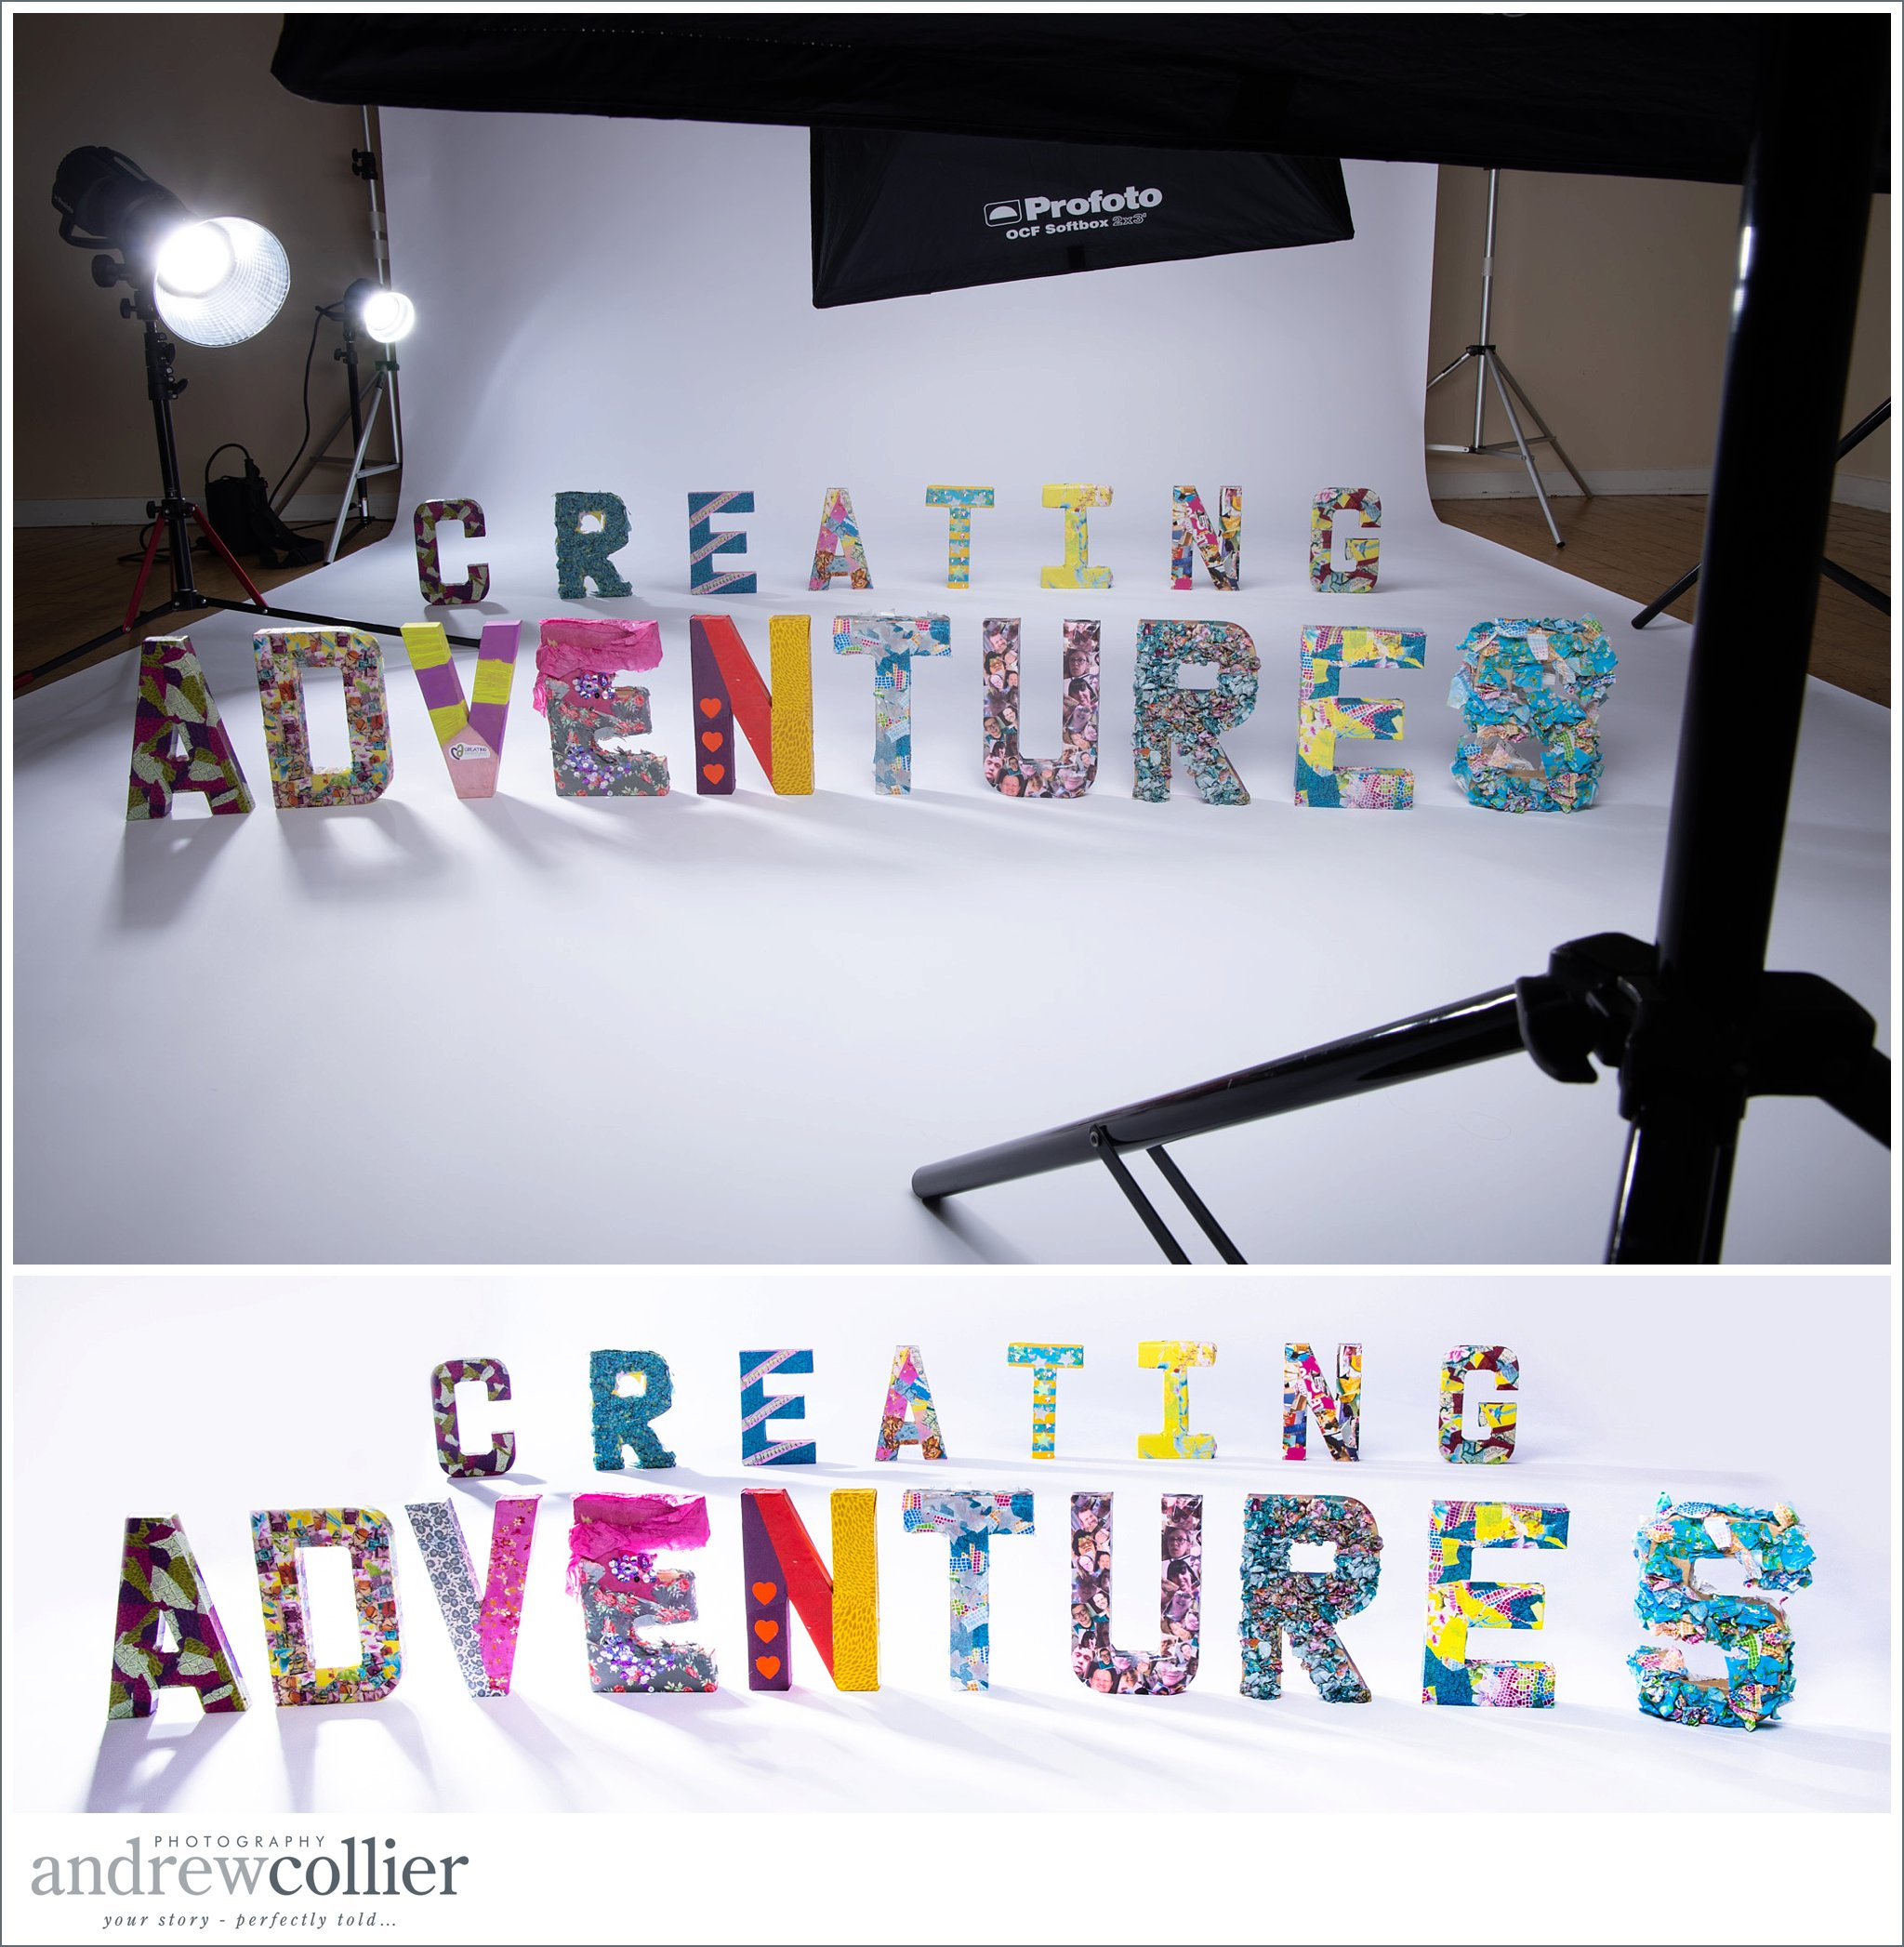 Brand photography for Cheshire Charity Creating Adventures